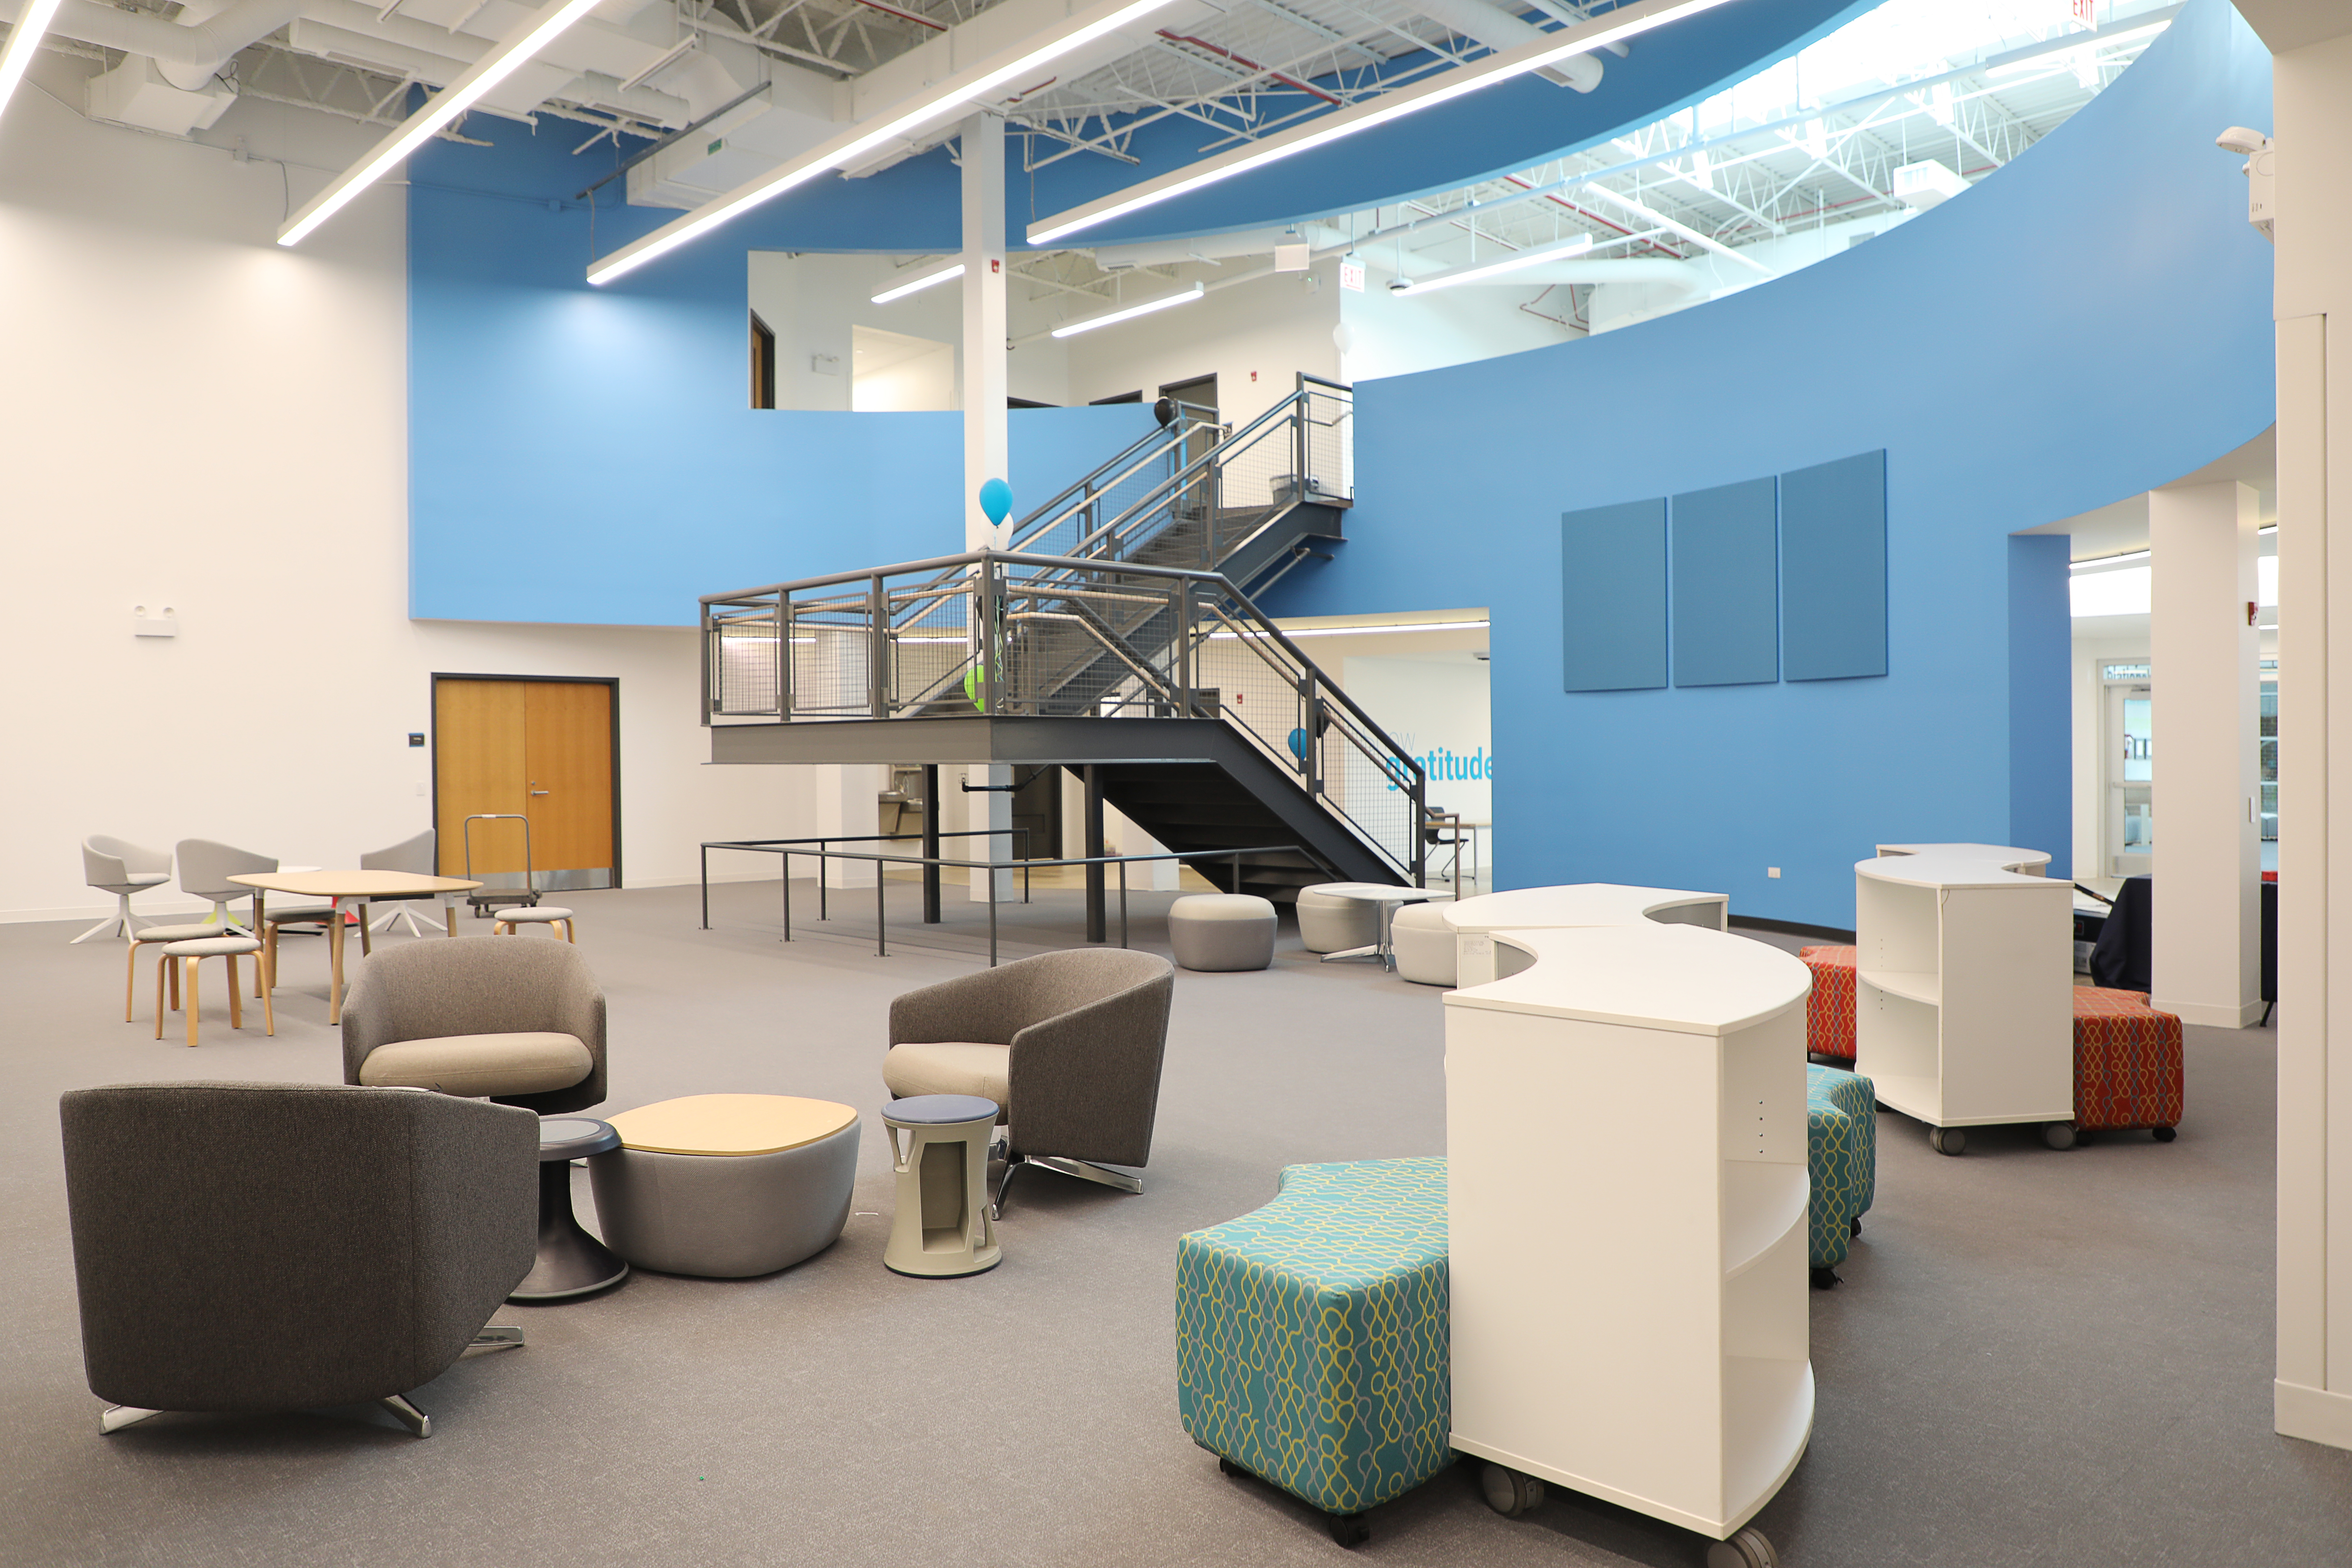 Skender Completes 100,000-SF Renovation for New South Side Charter School